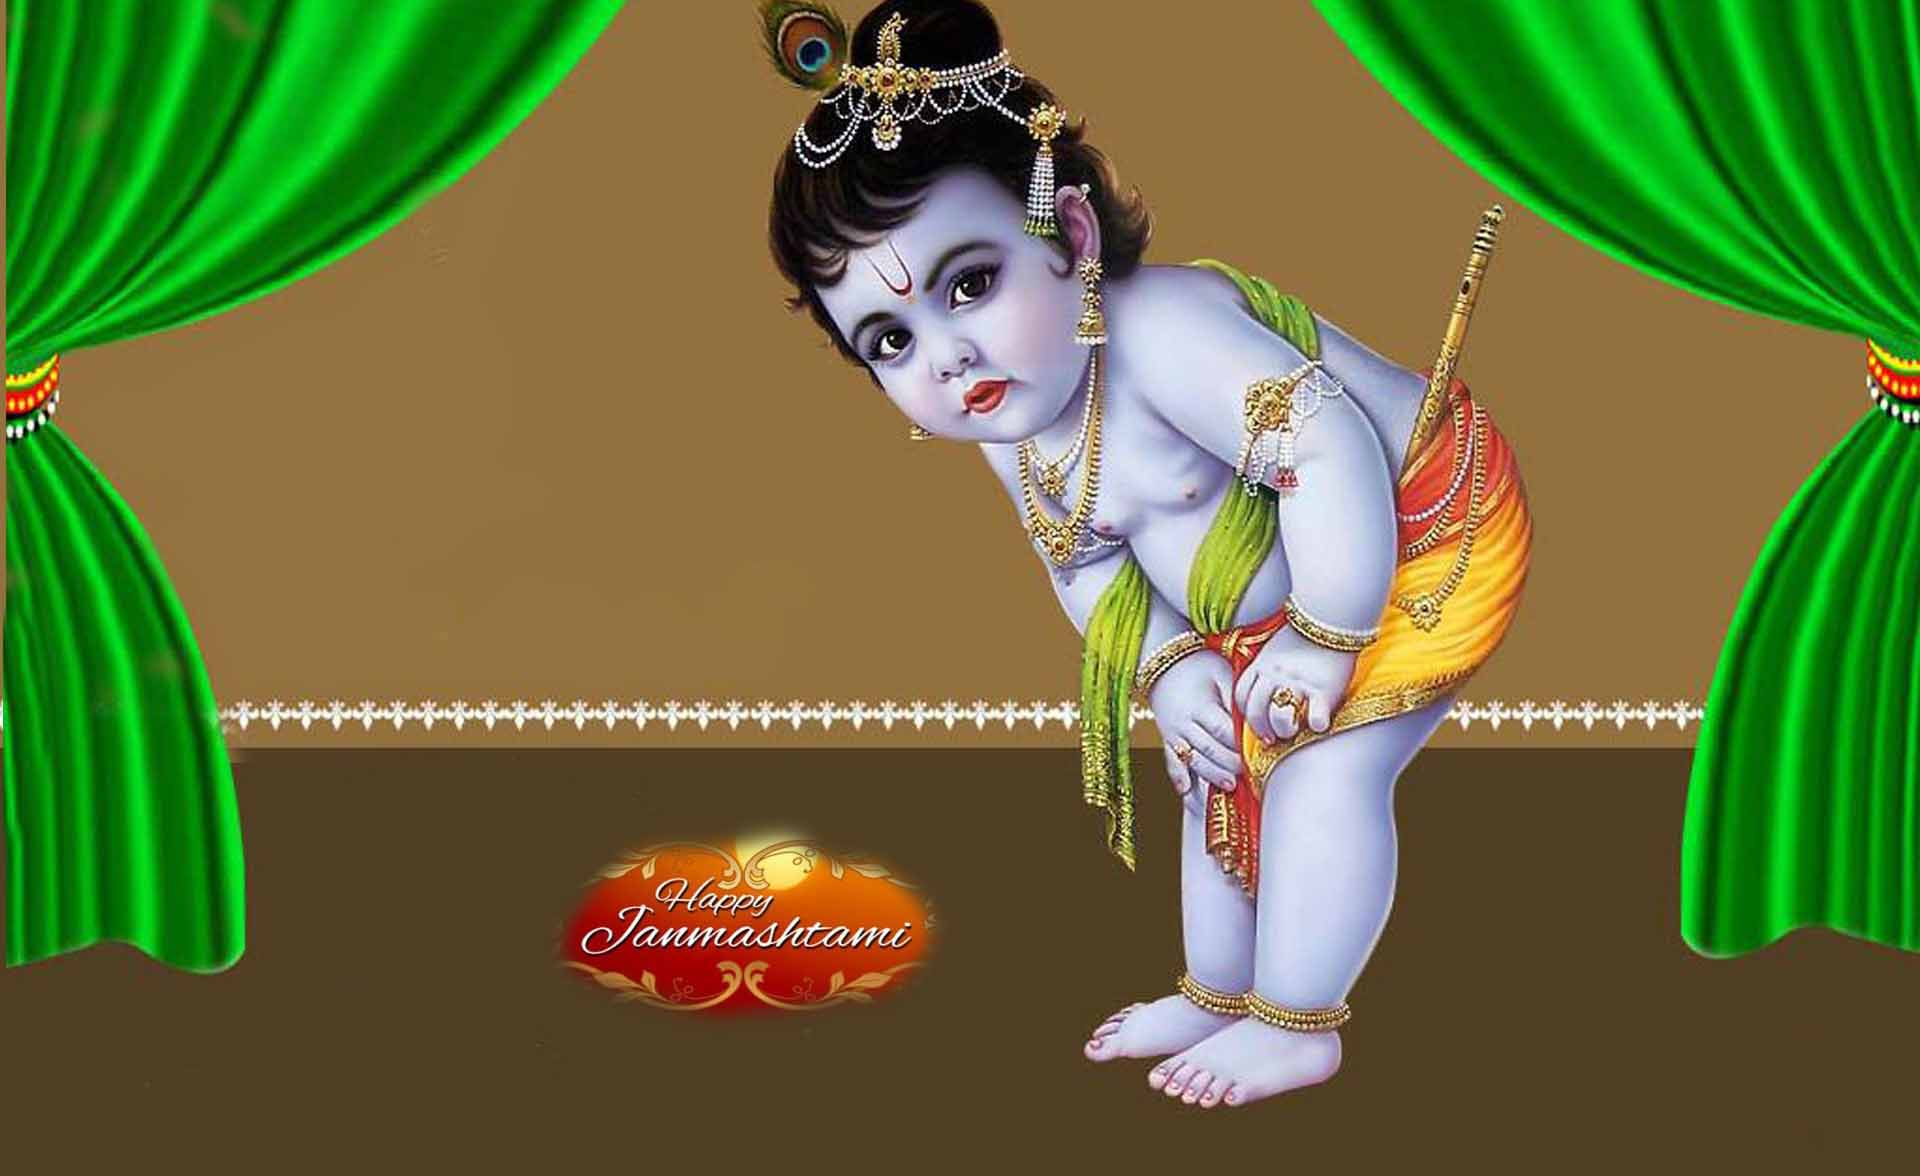 Happy Janmashtami 2016 HD Cover Pictures for Facebook